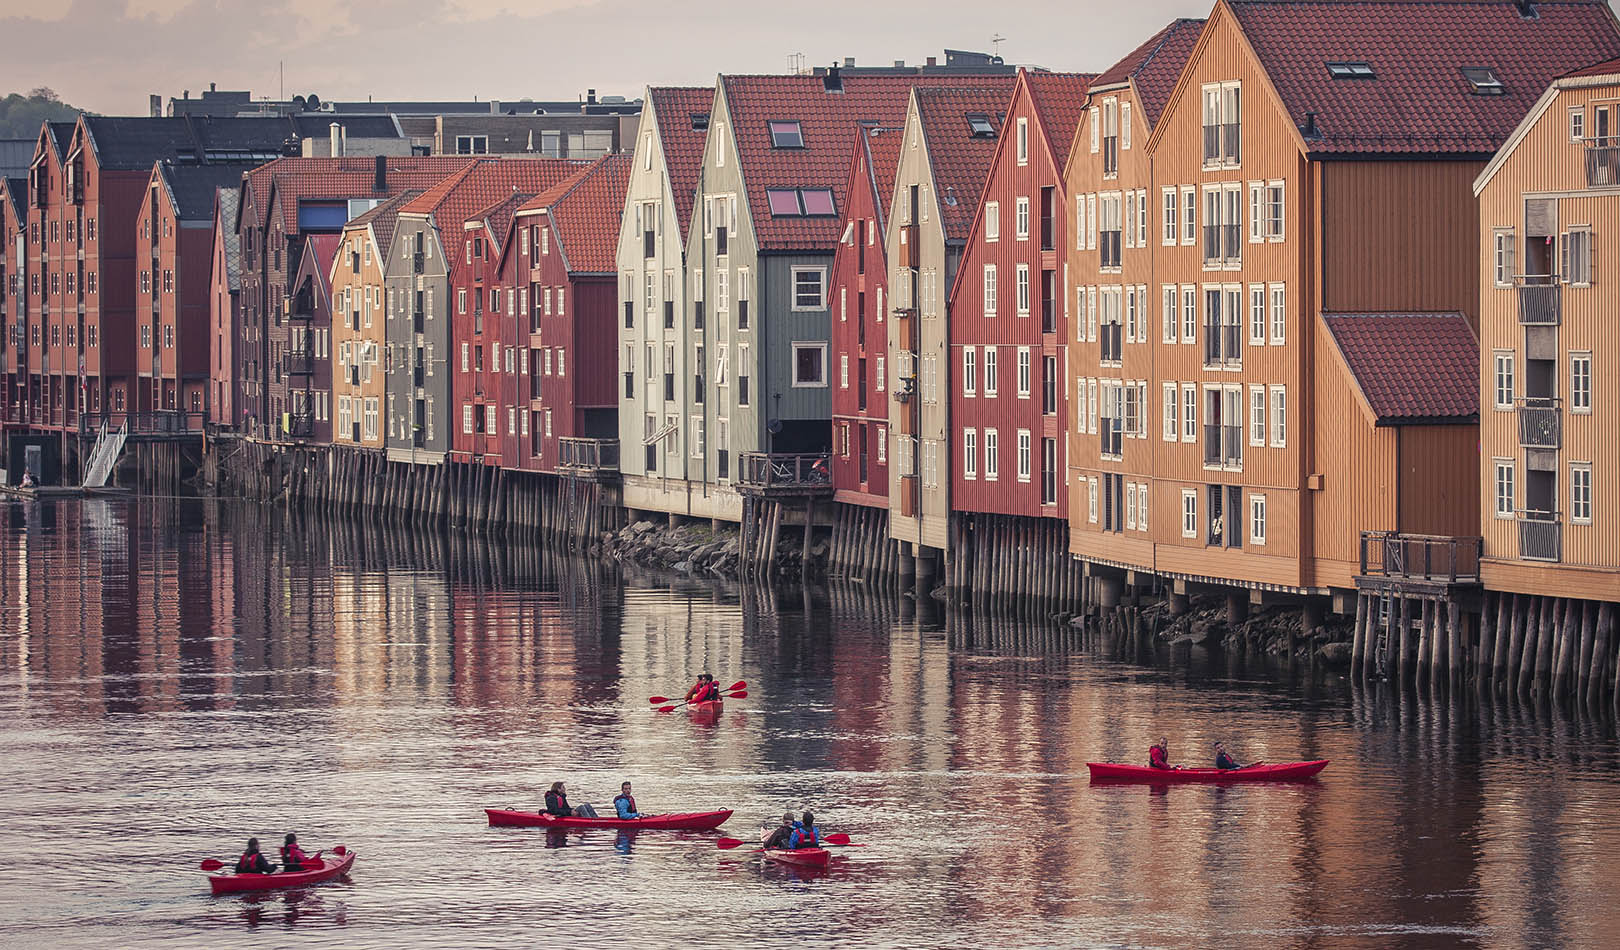 Old buildings along the river in Trondheim.